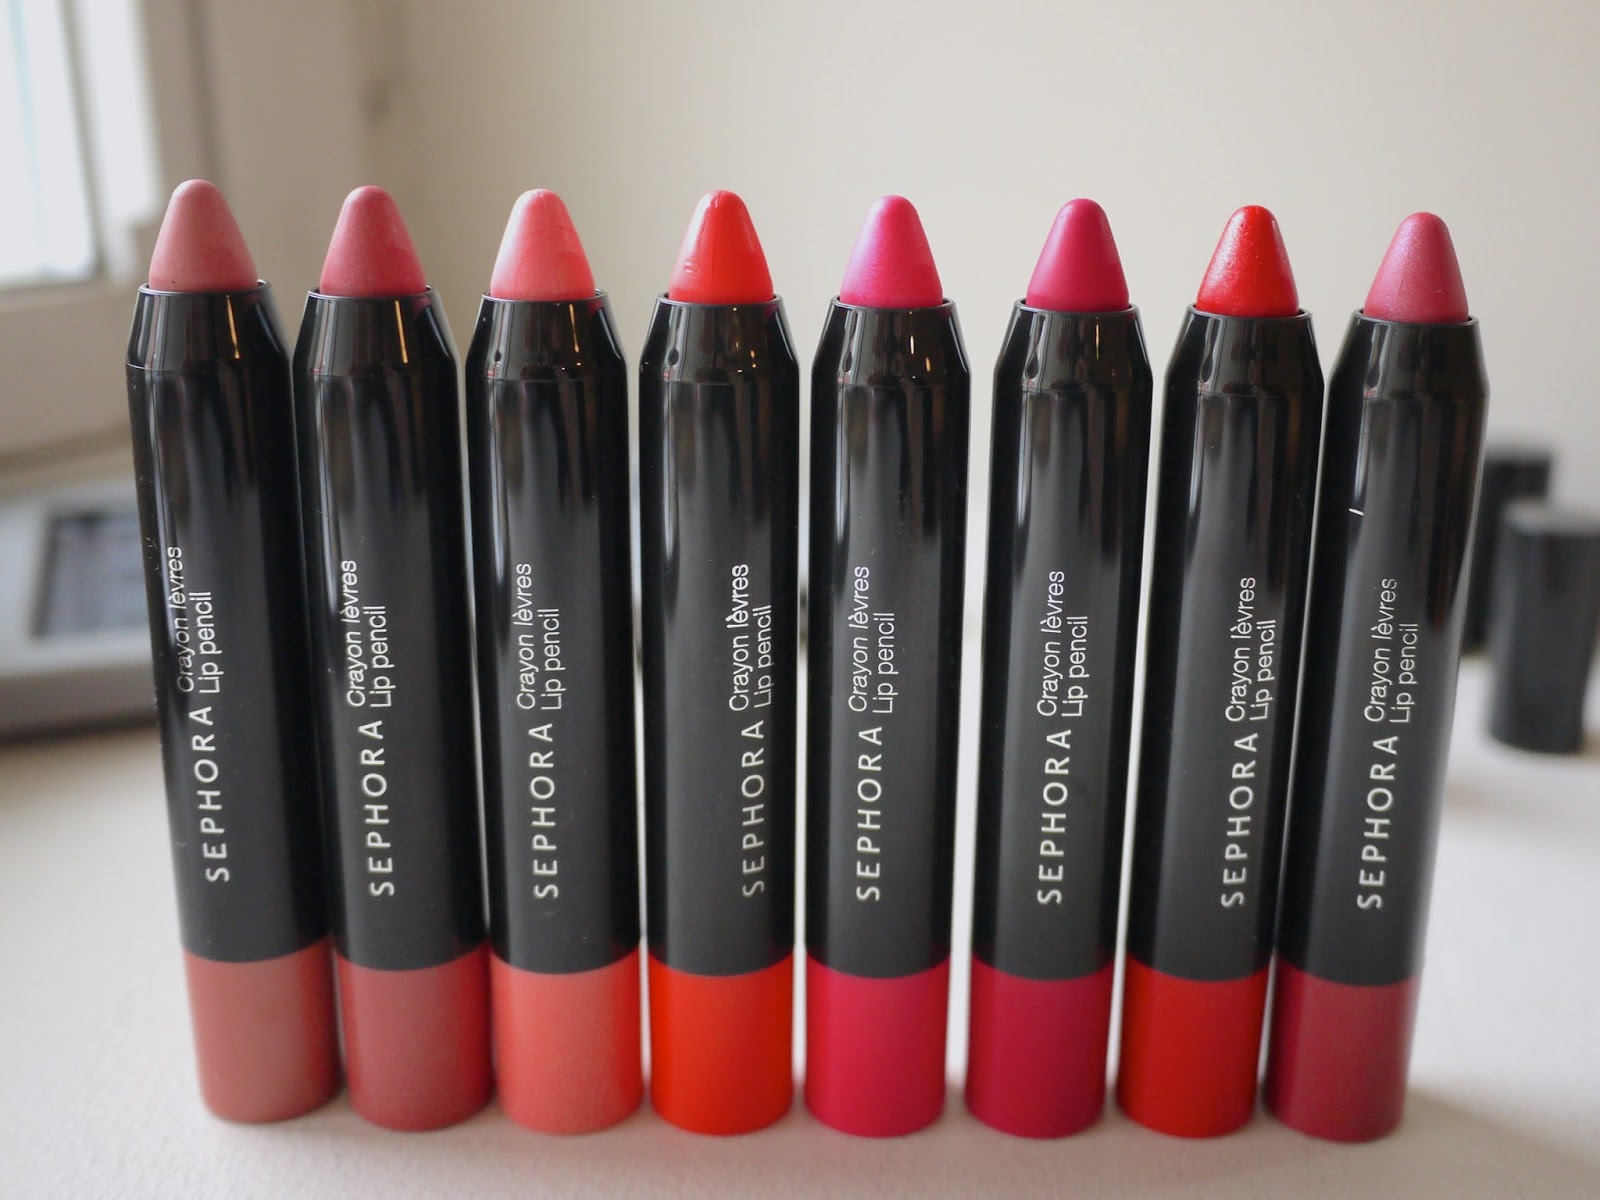 Sephora Endless Kisses: Lip Pencil Set review and swatches